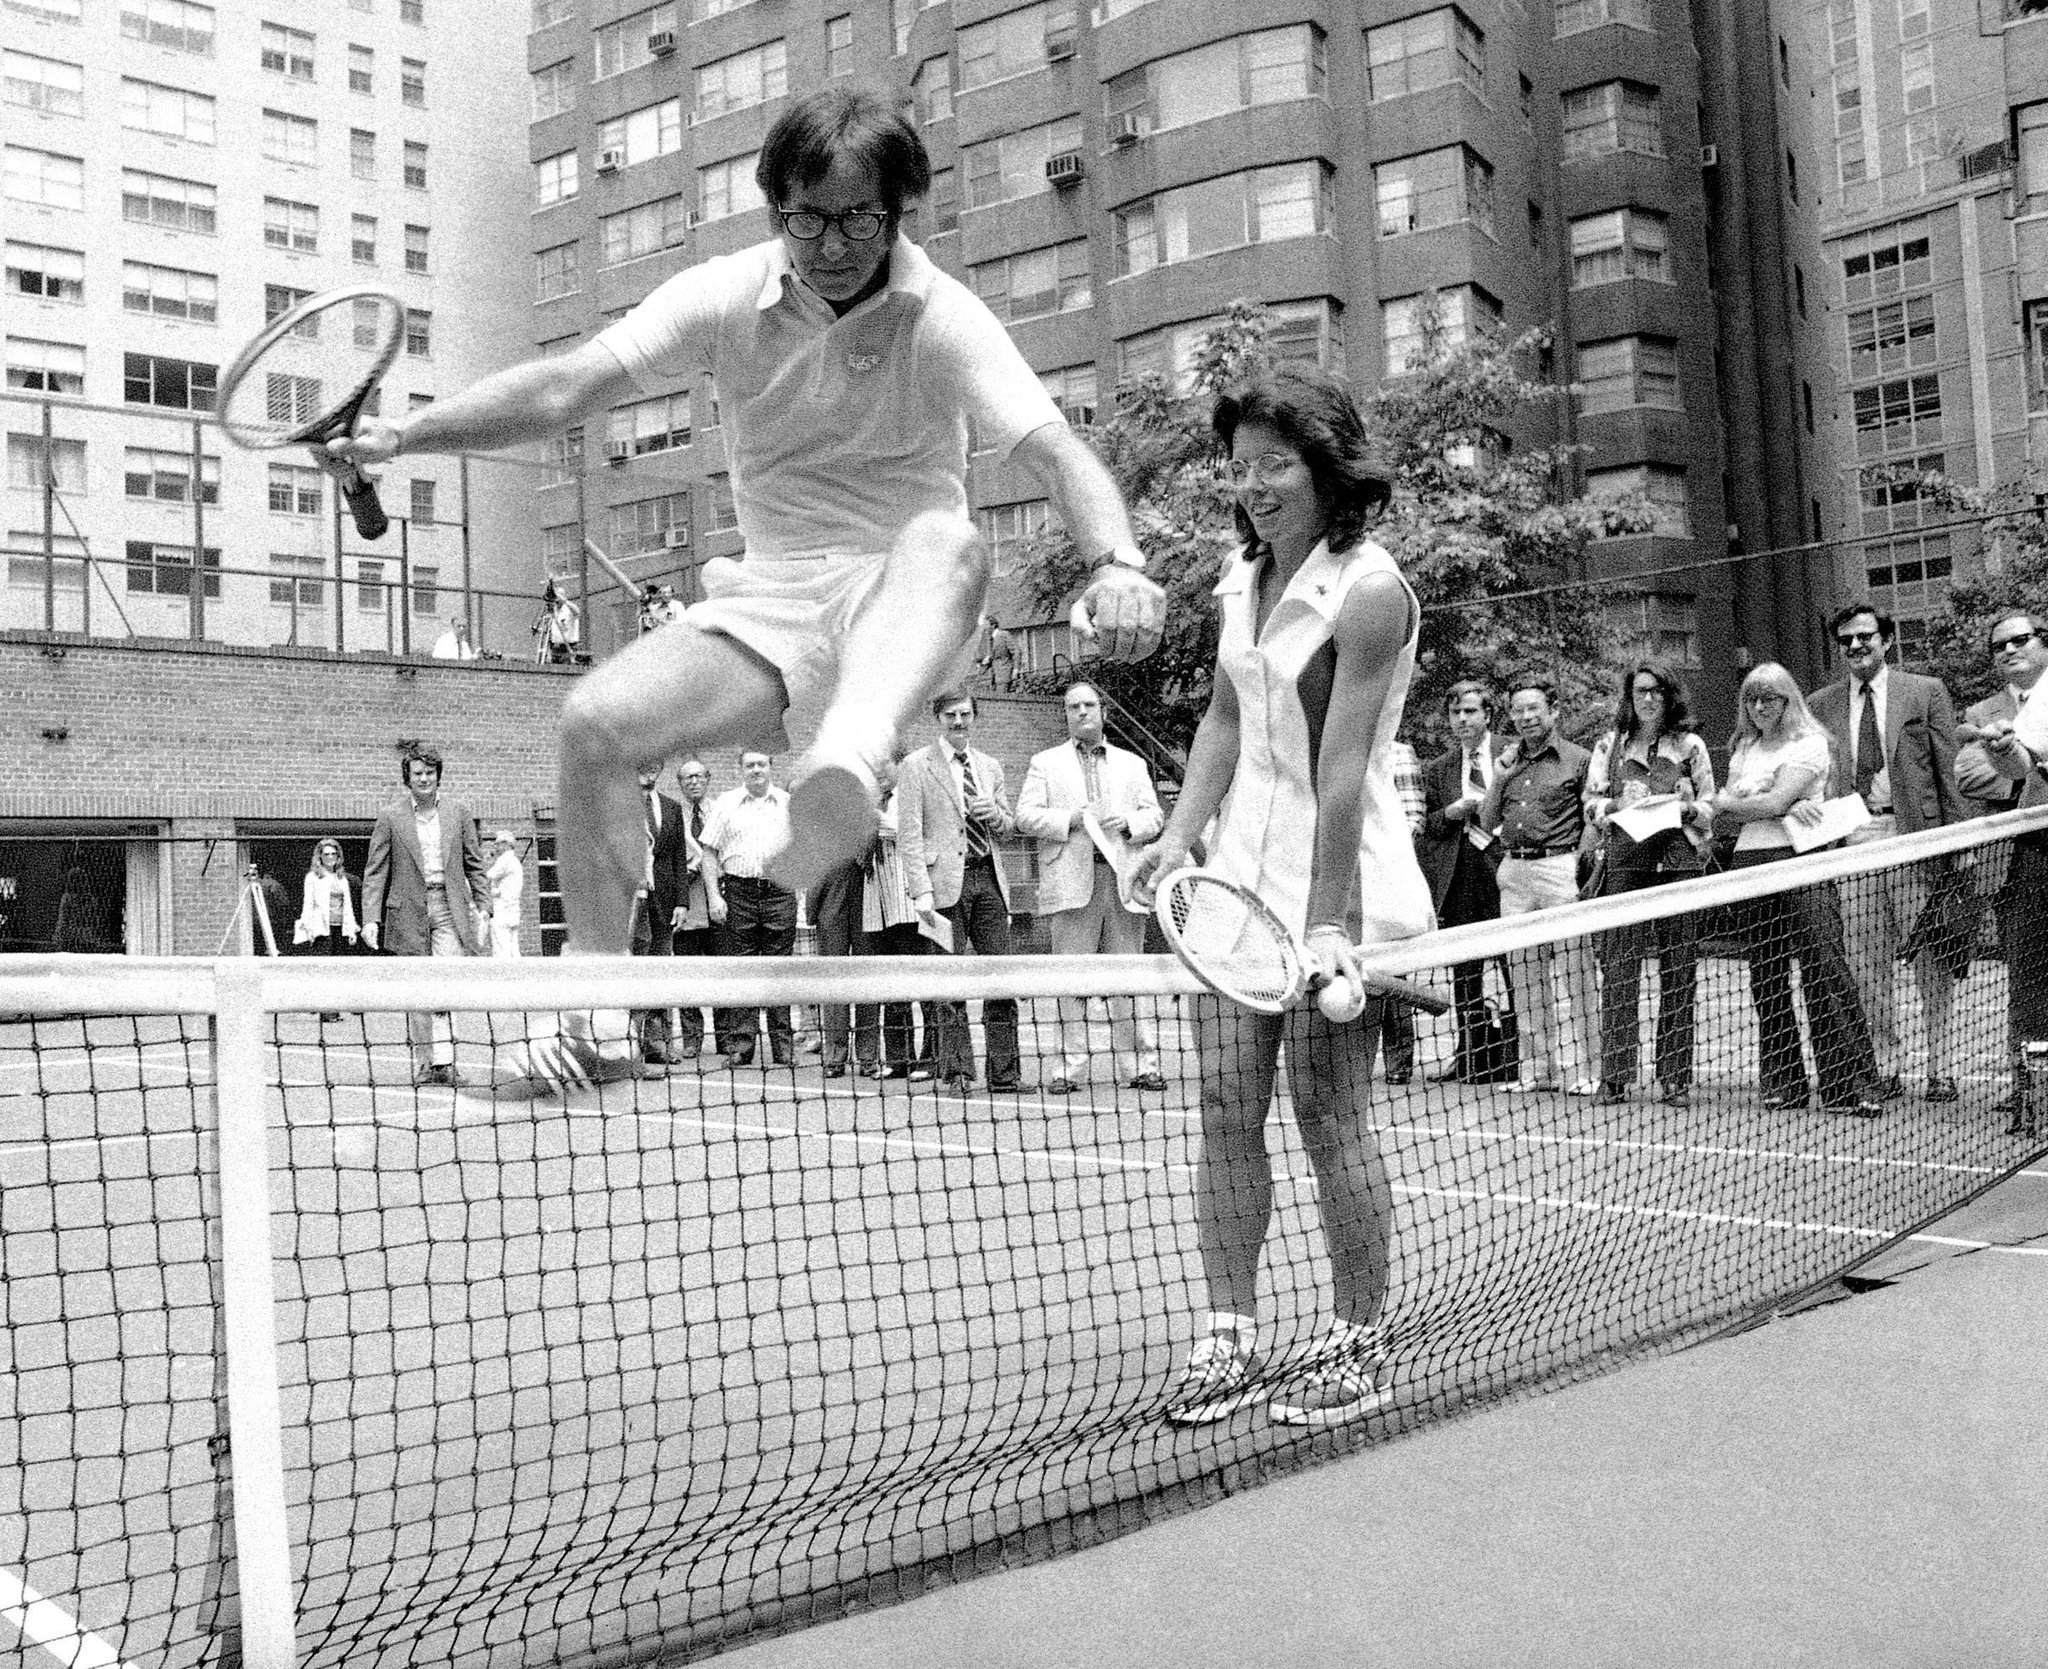 Billie Jean King holds down the net for a jumping Bobby Riggs. The two went head-to-head not only on the court but in the media storm leading up to the match.